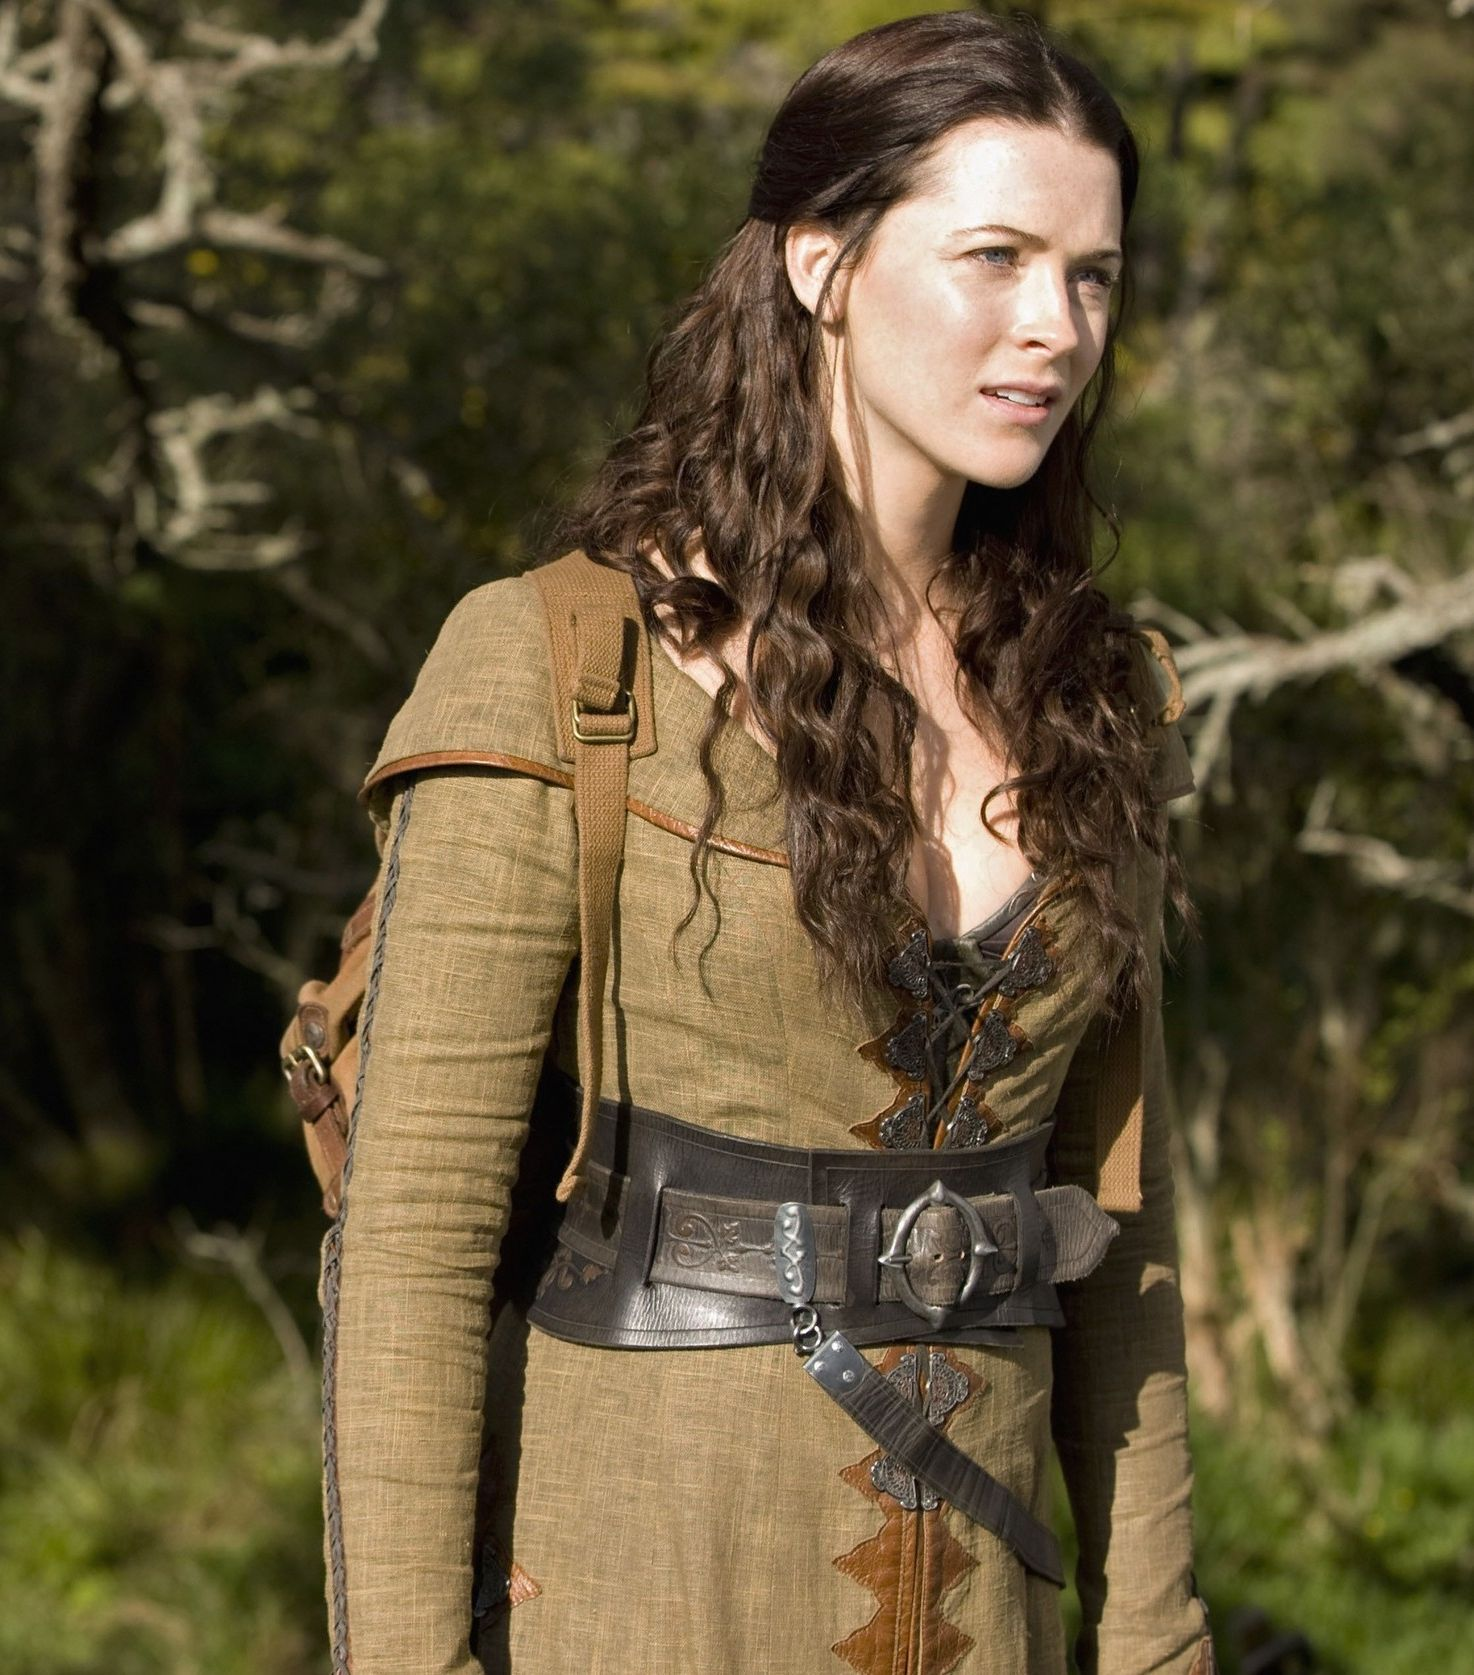 legend of the seeker kahlan